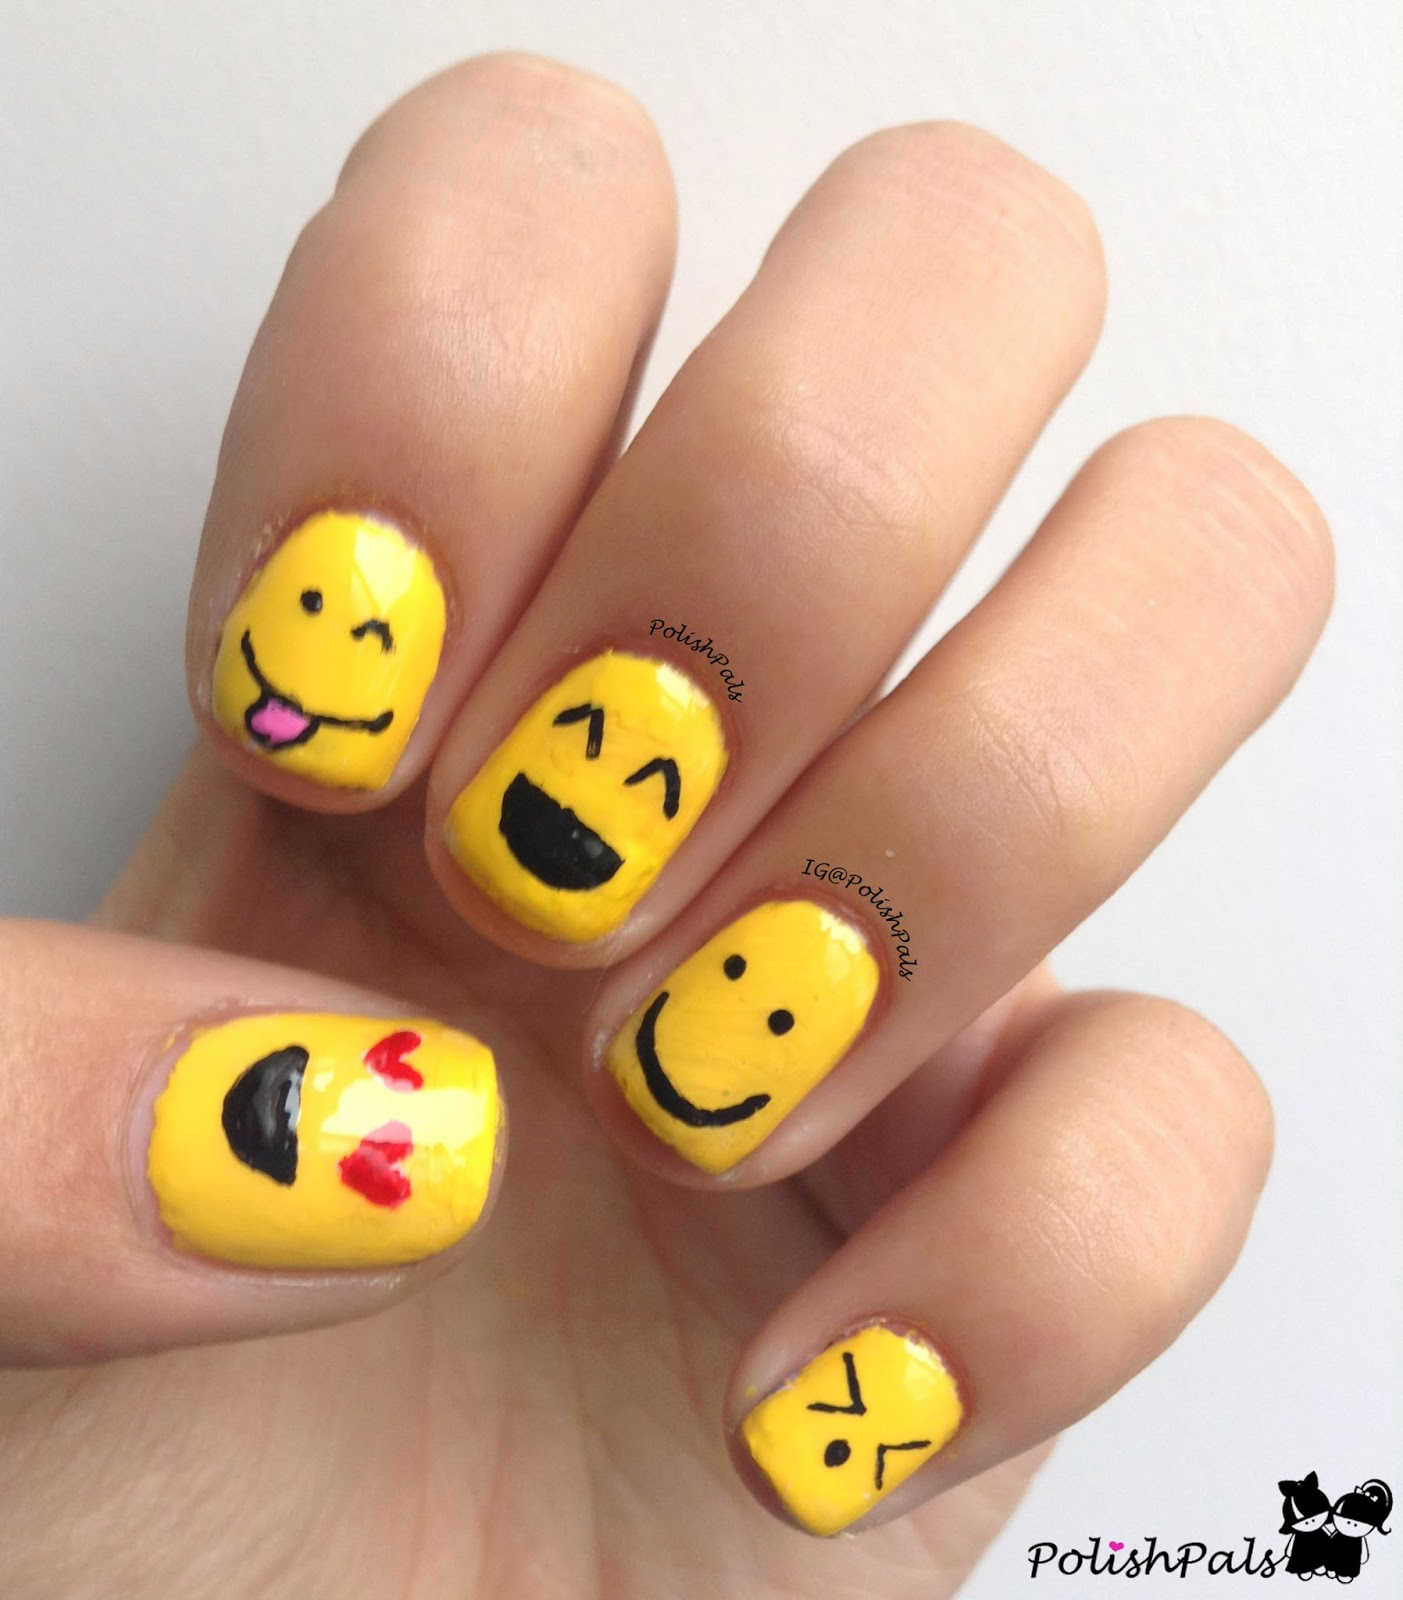 Polish Pals S Is For Smiley Face Nail Art